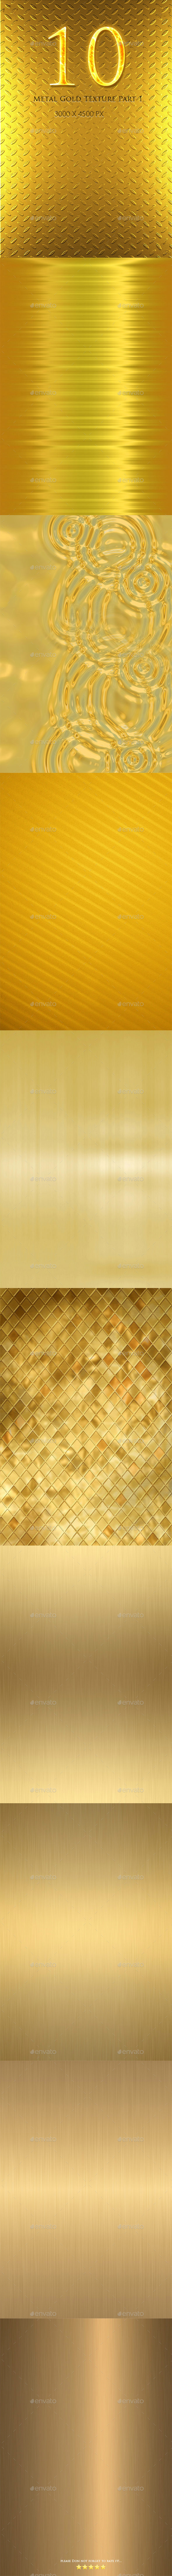 GraphicRiver 10 Metal Gold Texture Part 1 9748108